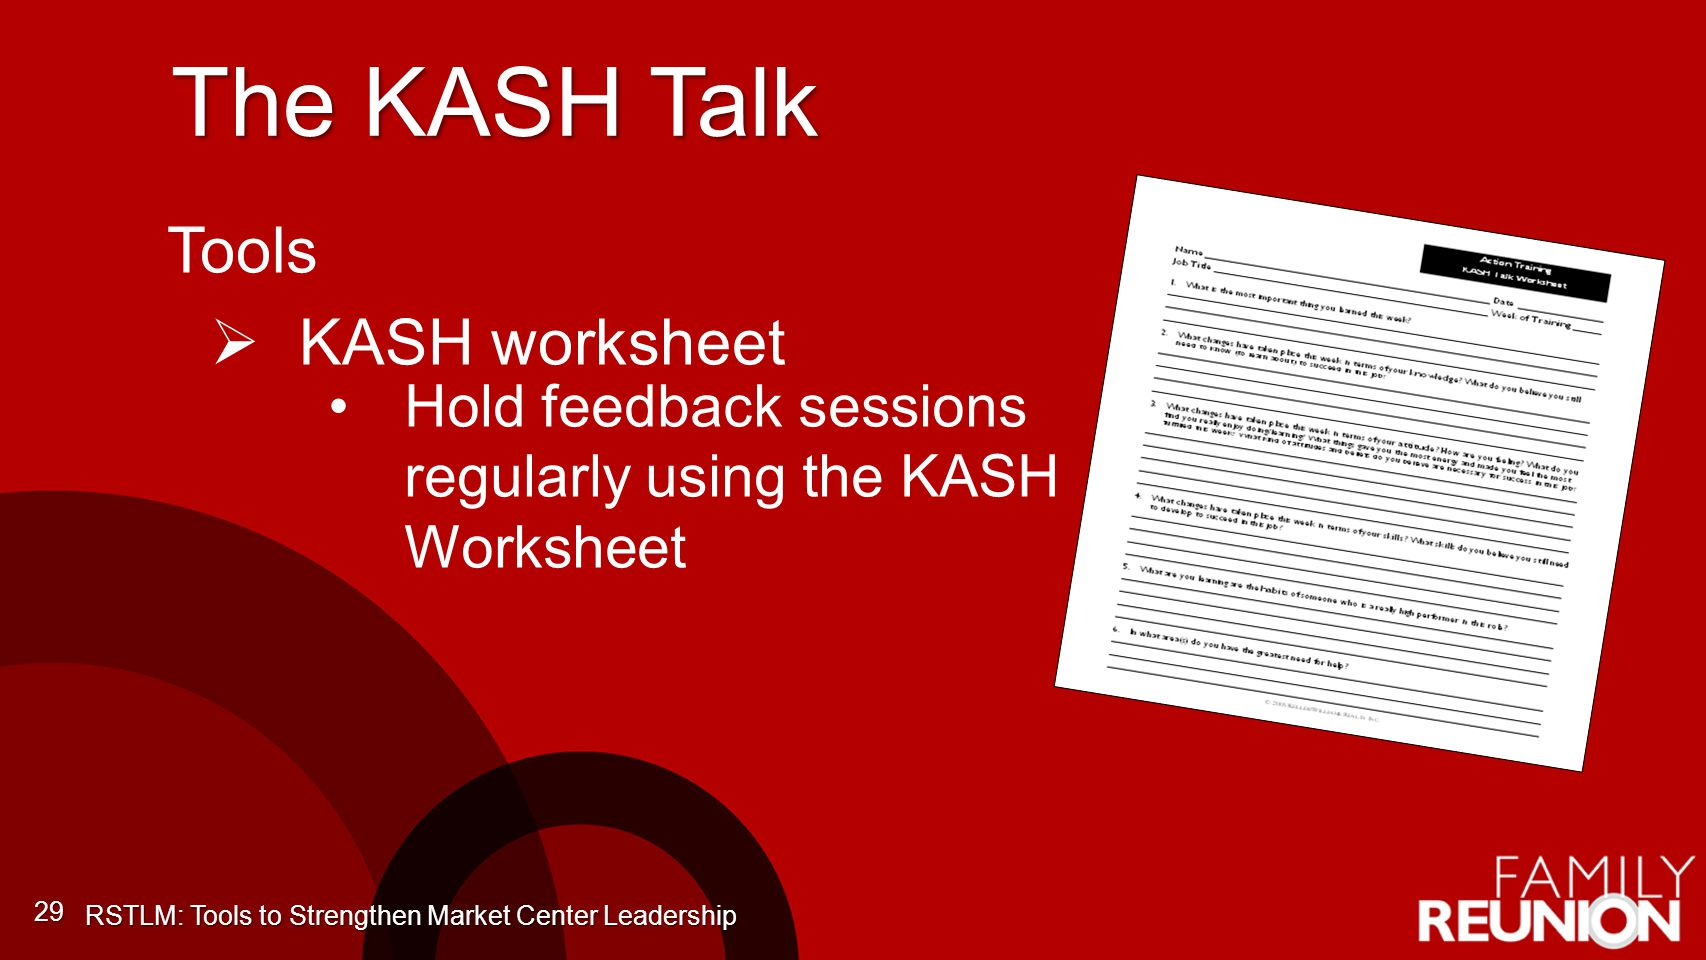 The KASH Talk 29 Tools KASH worksheet Hold feedback sessions regularly using the KASH Worksheet RSTLM: Tools to Strengthen Market Center Leadership